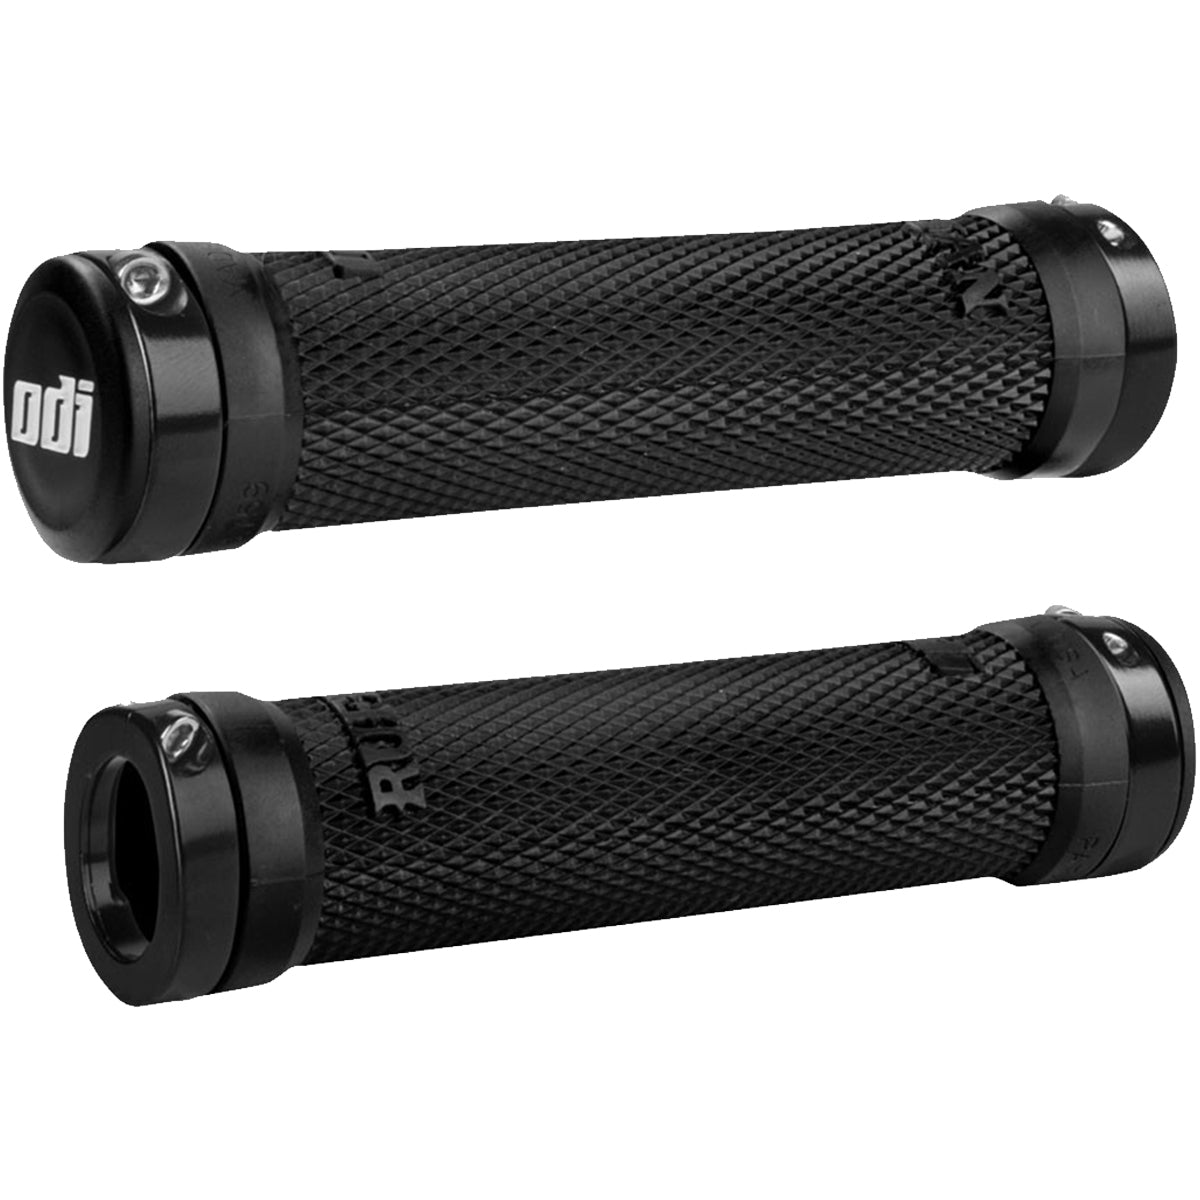 ODI 130mm Ruffian Lock-On Bonus Pack Off-Road Hand Grips-D30RFB